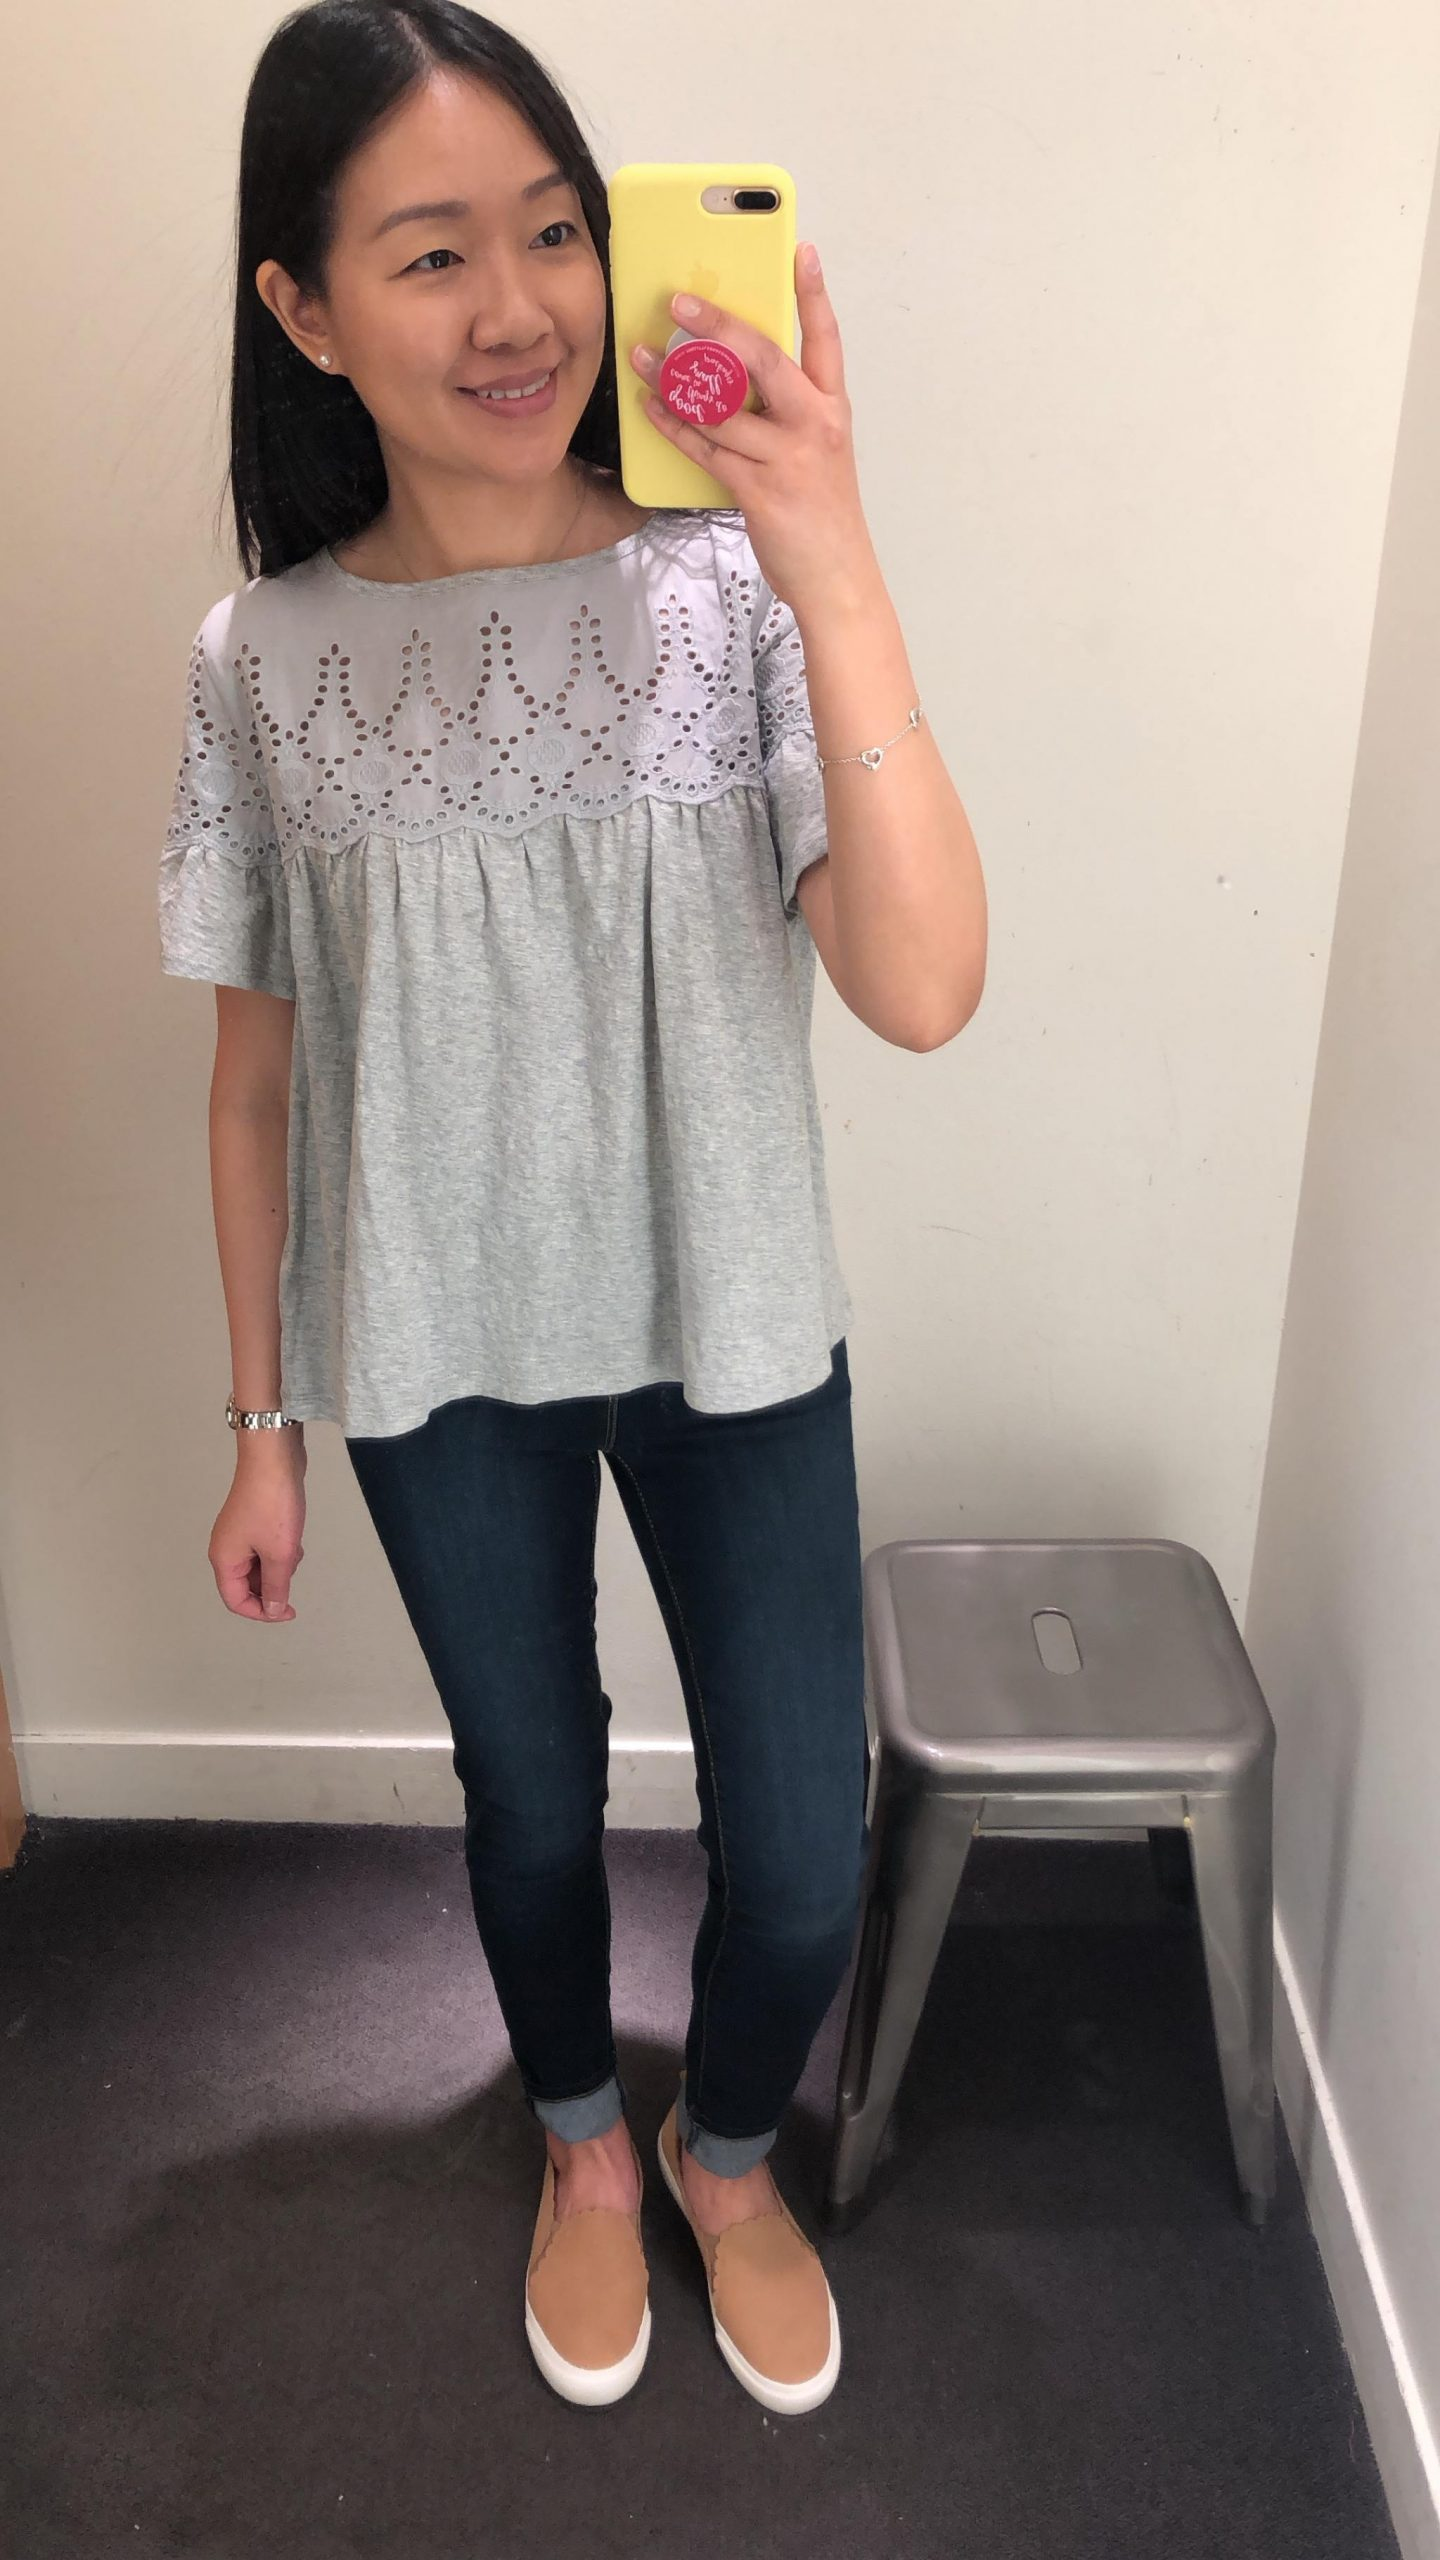 J.Crew Eyelet Top in Vintage Cotton, size XS